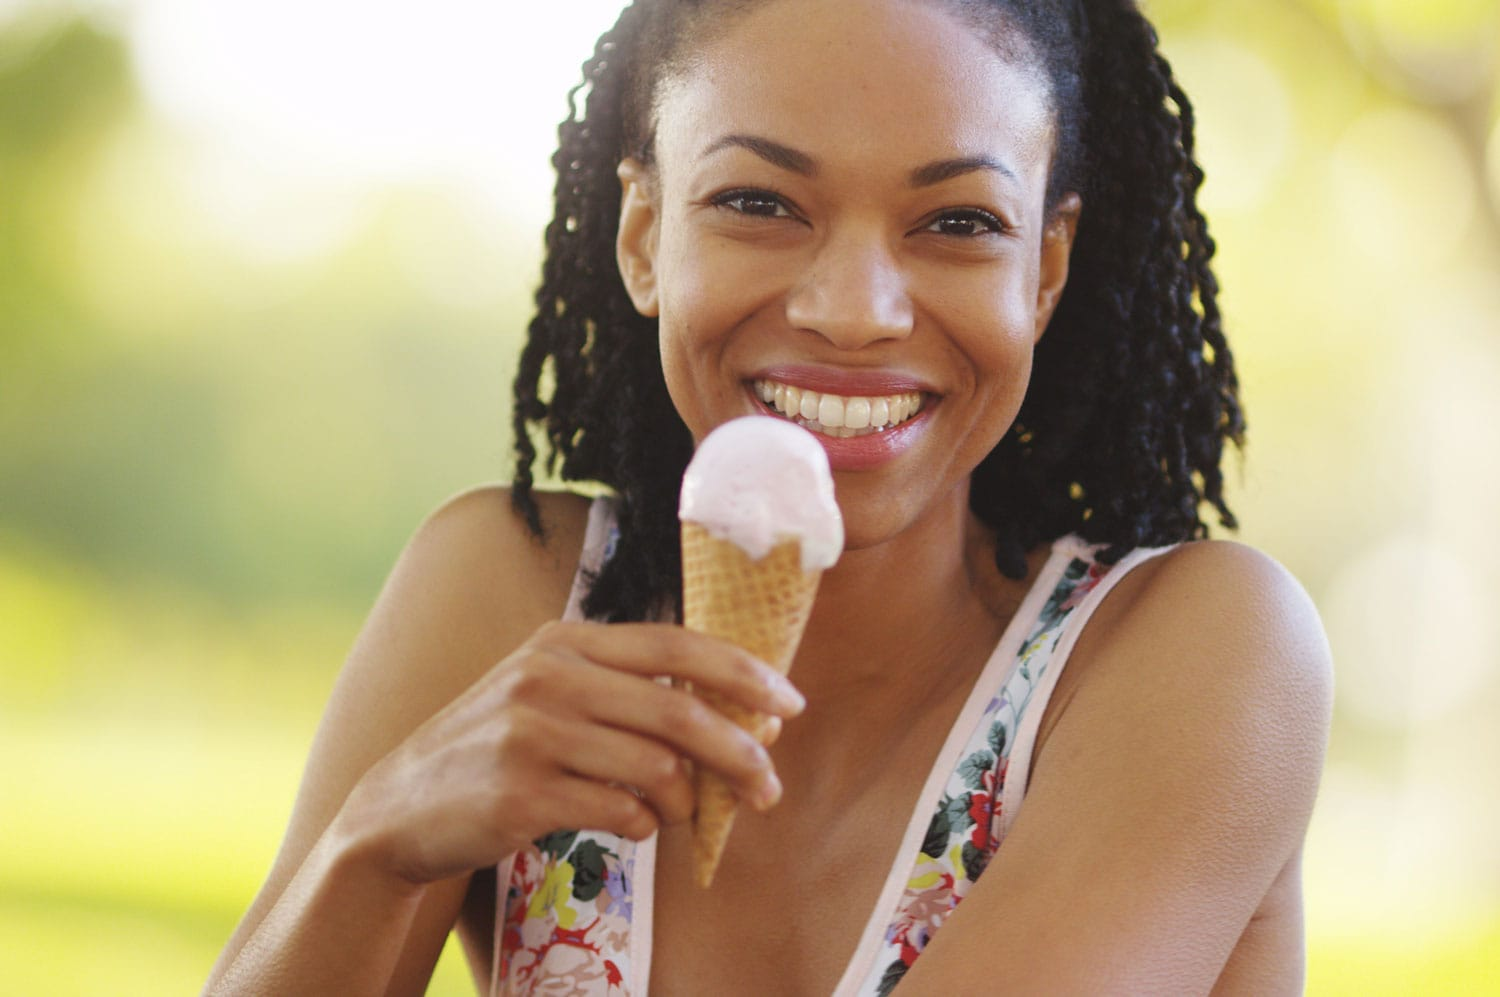 Black woman smiling and eating ice cream